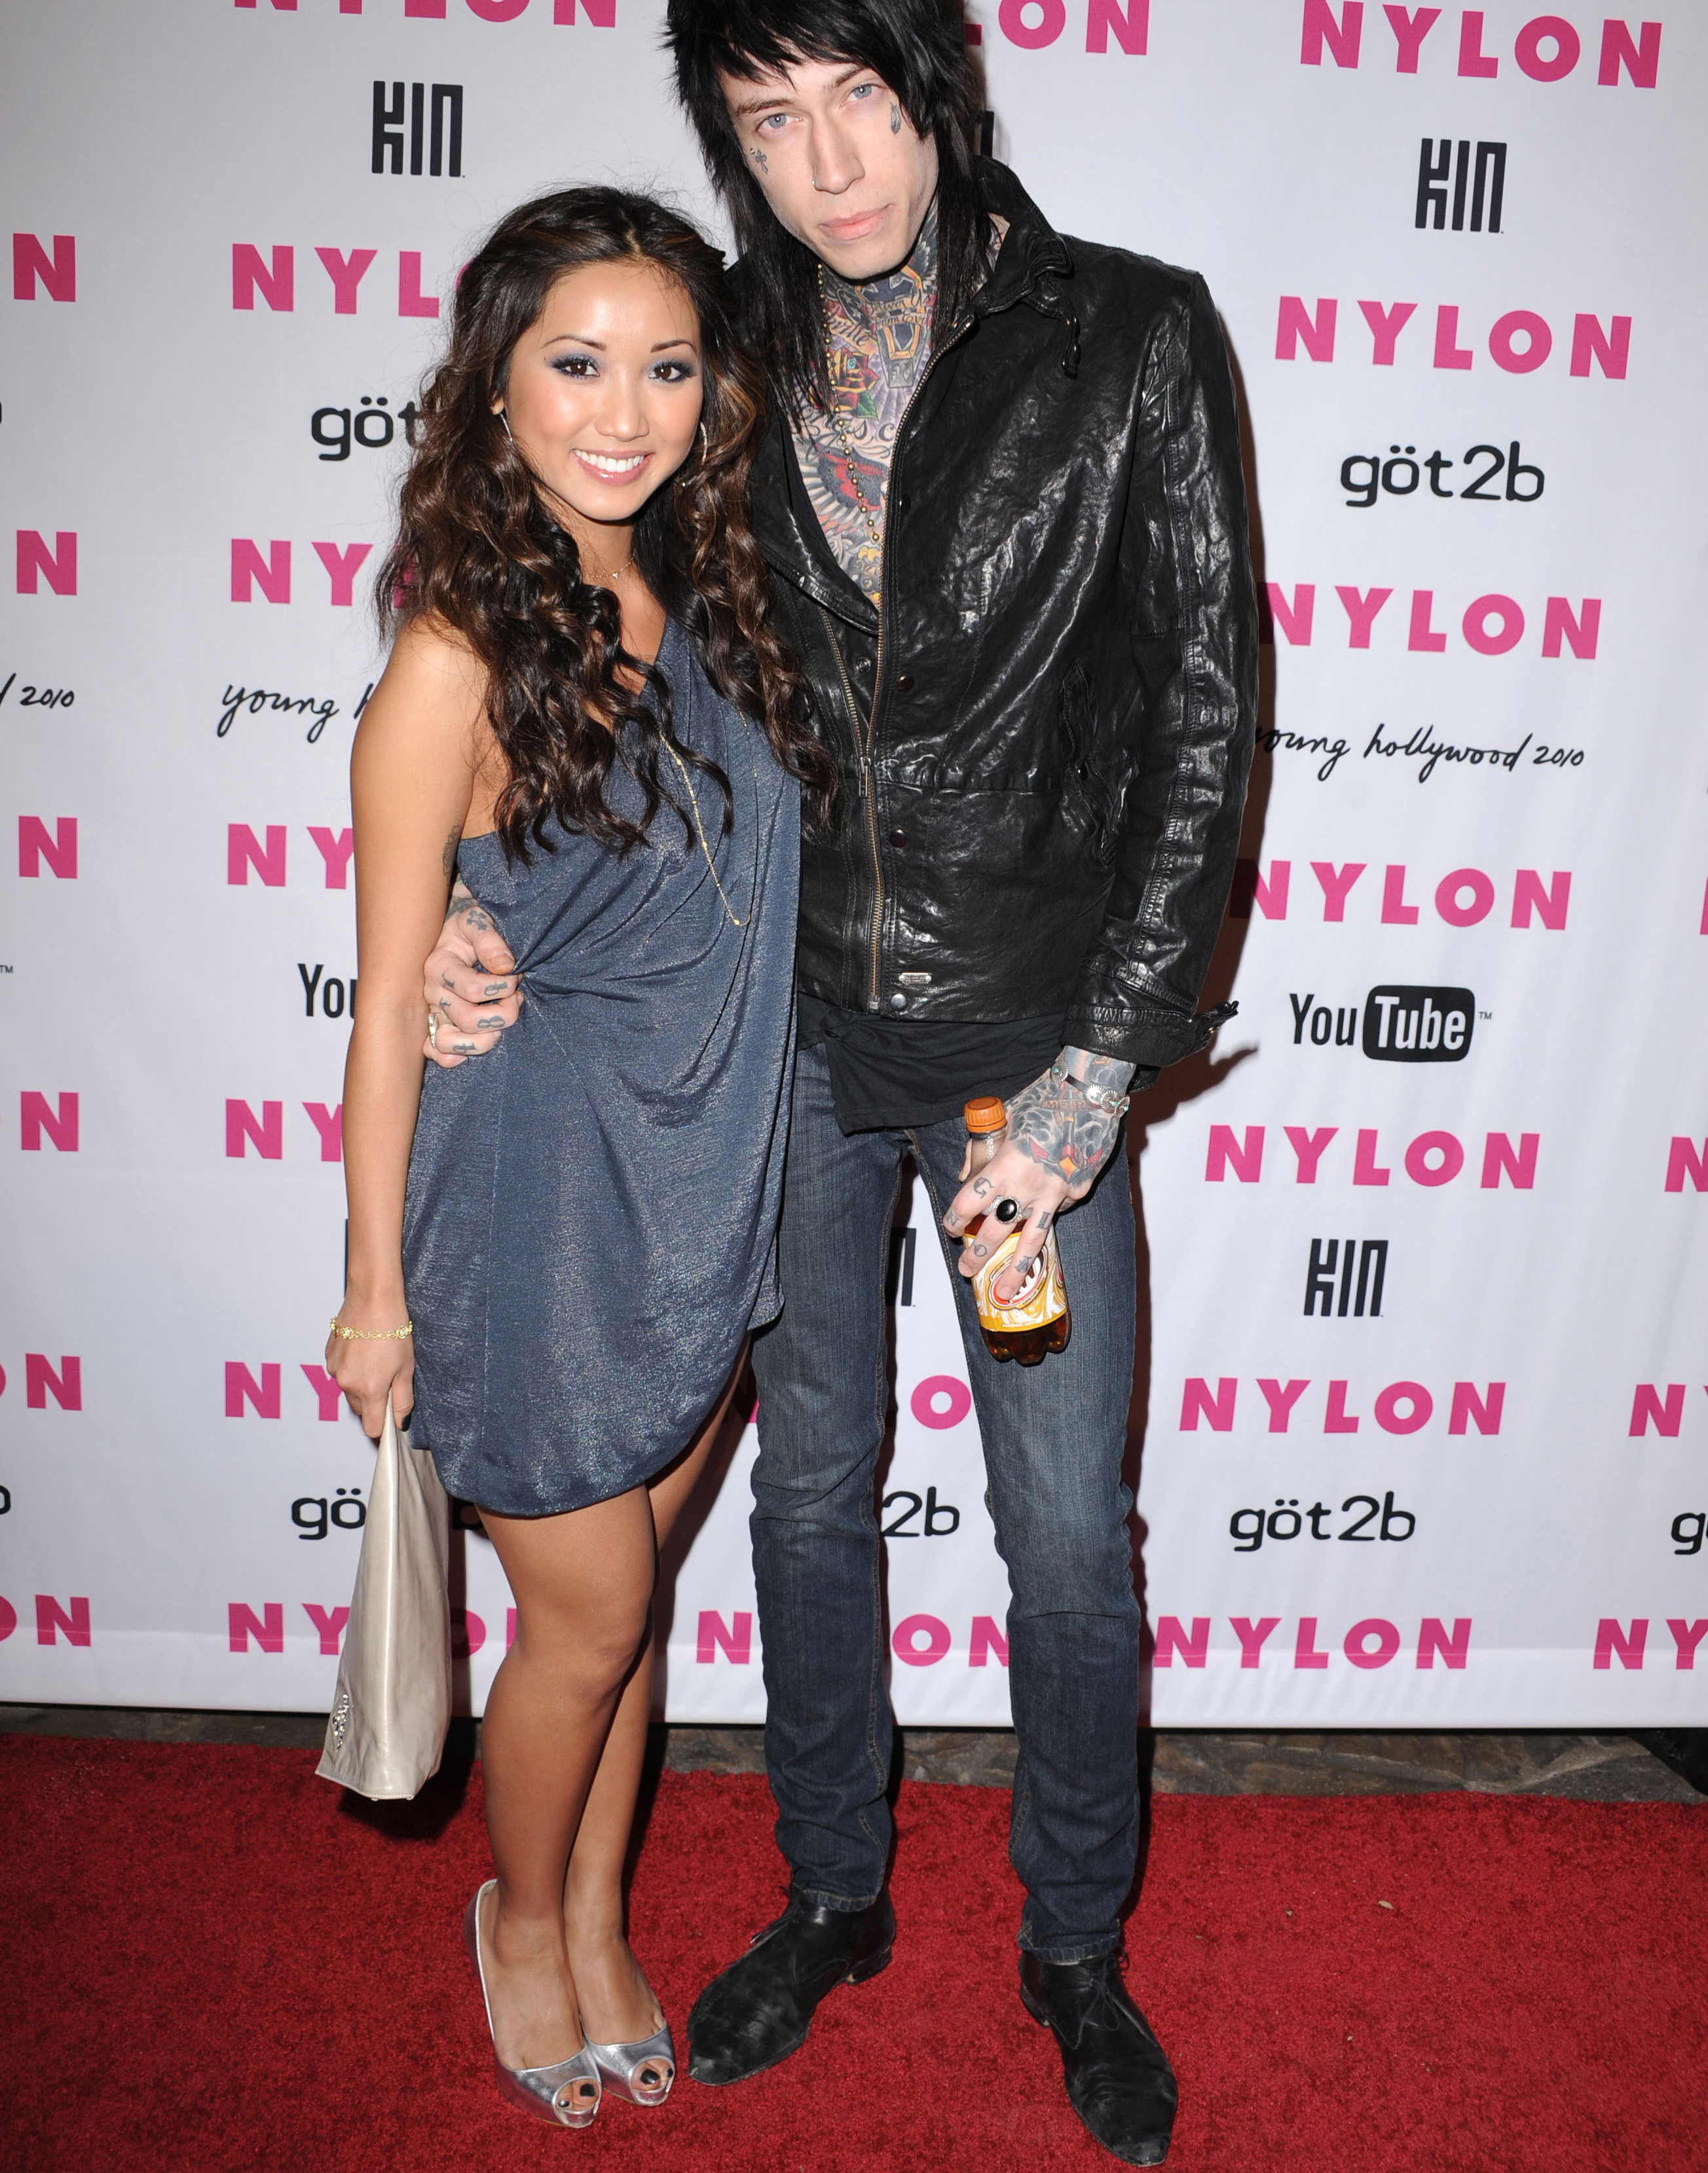 Image result for brenda song trace cyrus